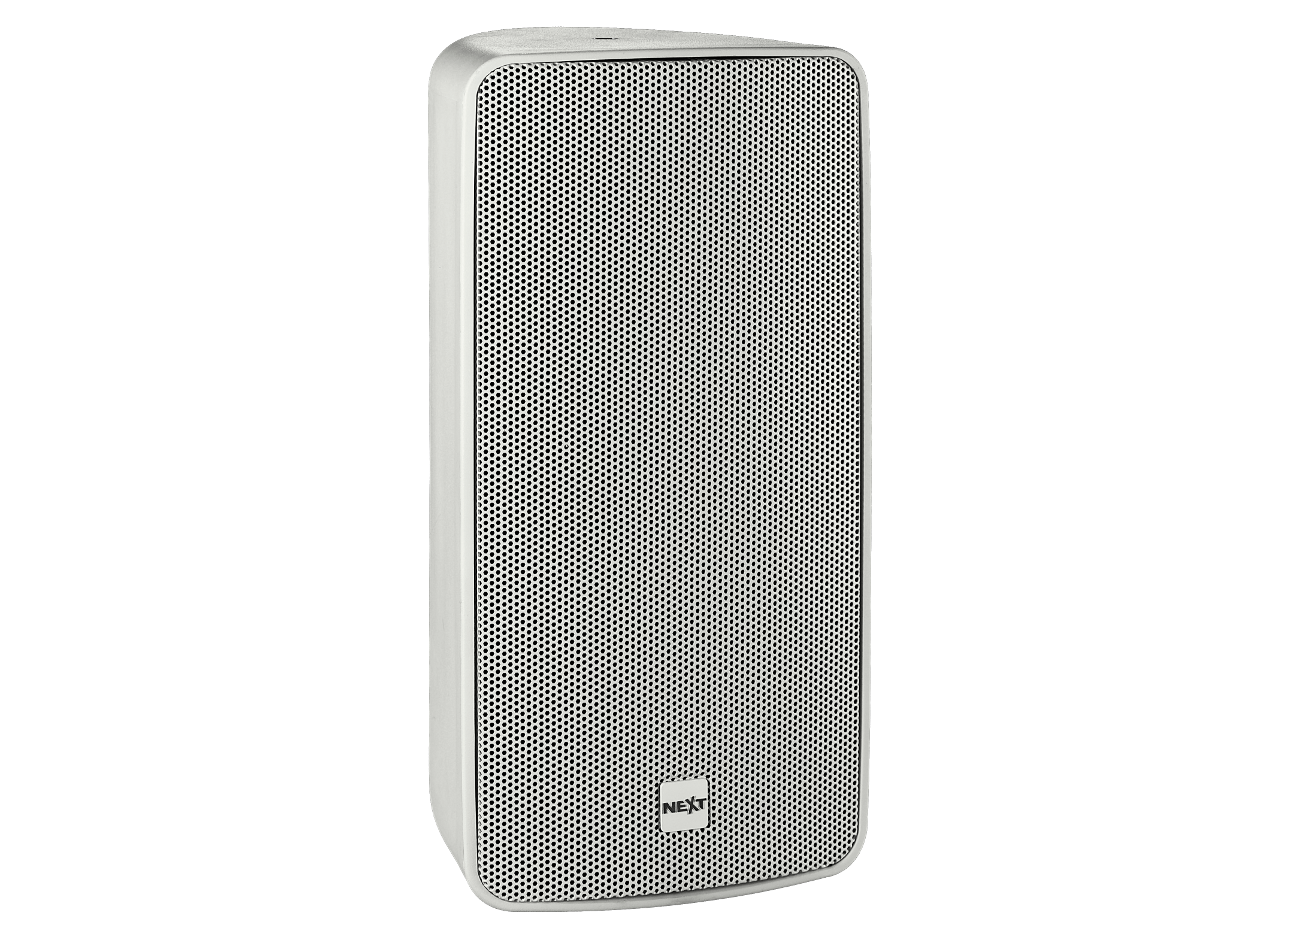 NEXT-proaudio_i6_angle_white.png